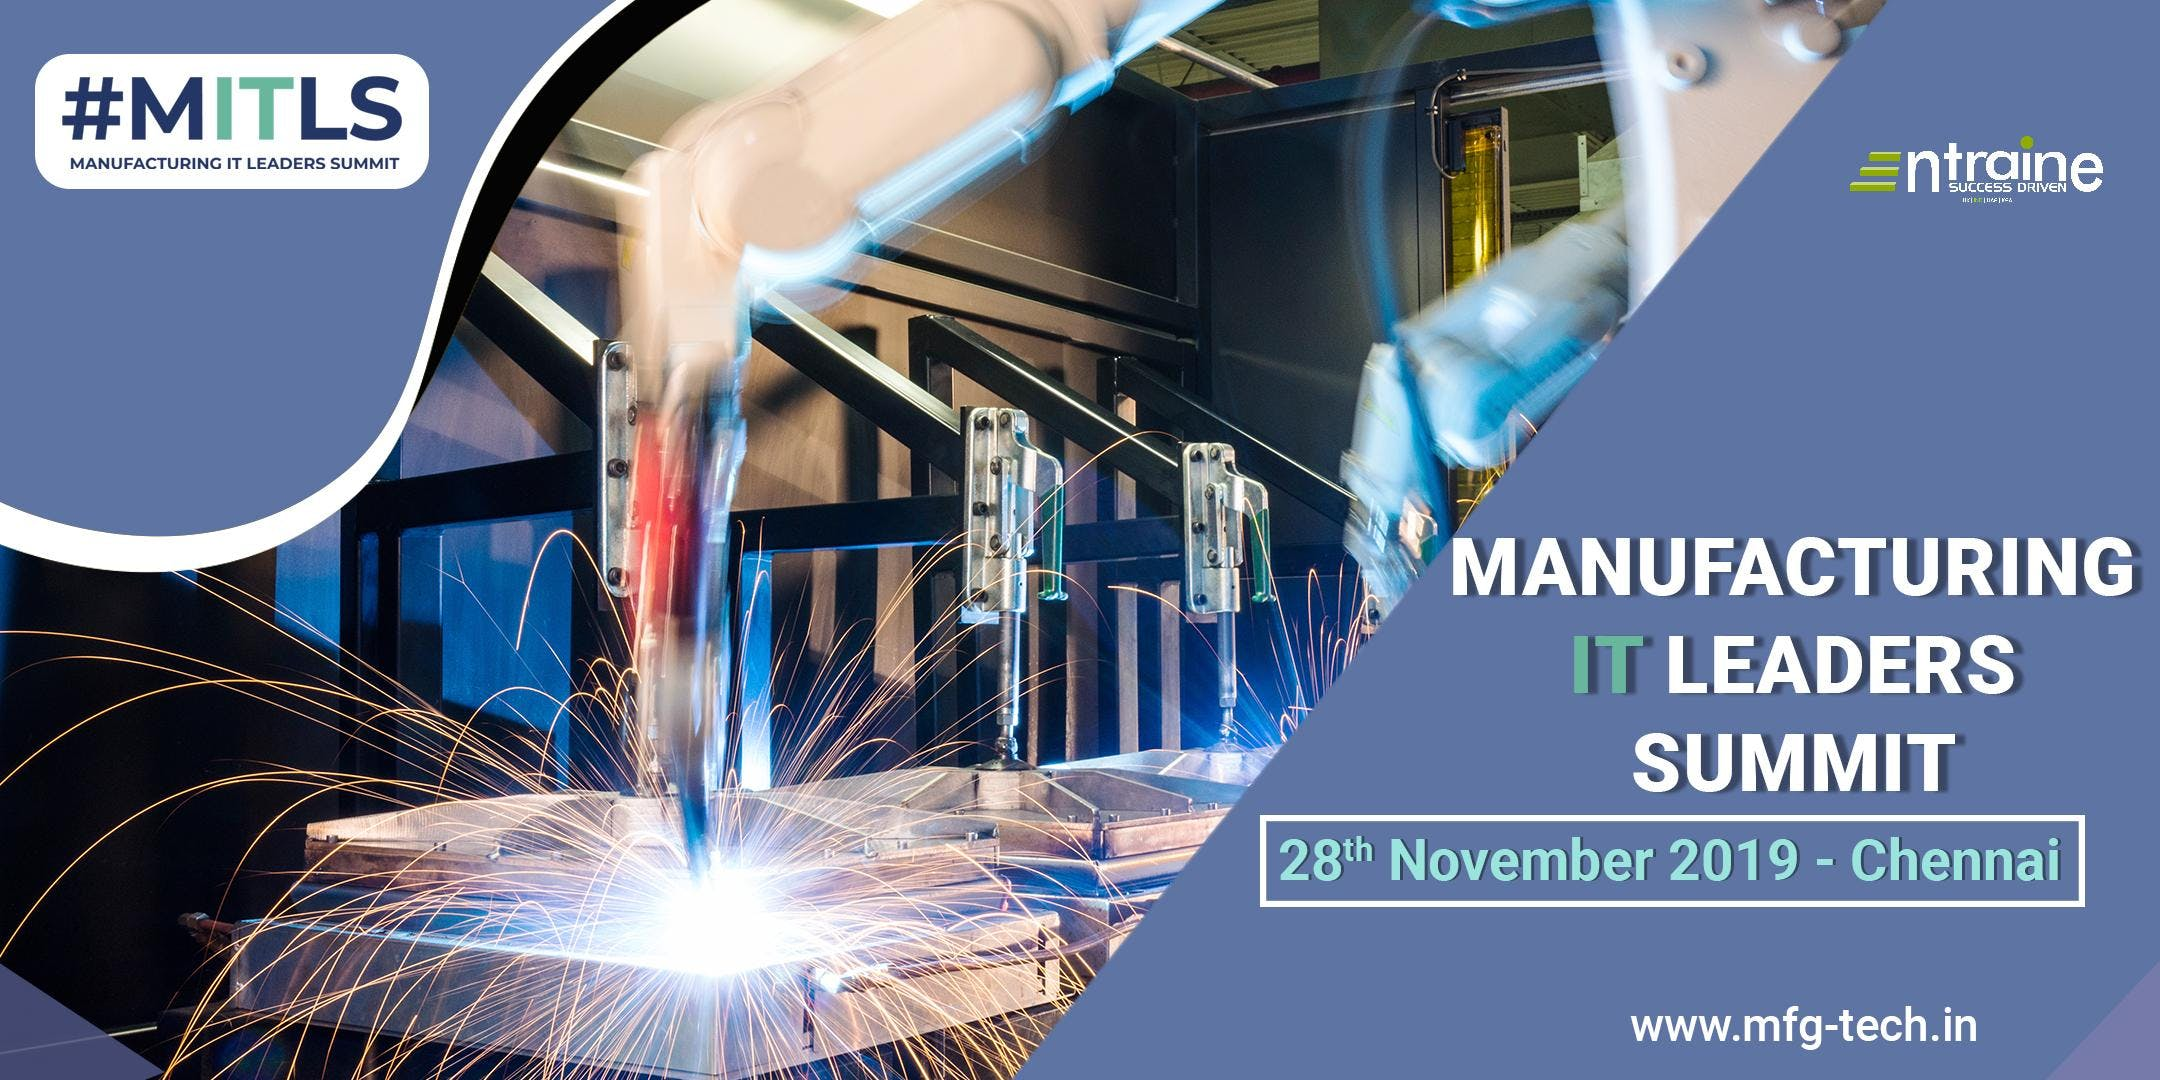 Manufacturing IT Leaders Summit